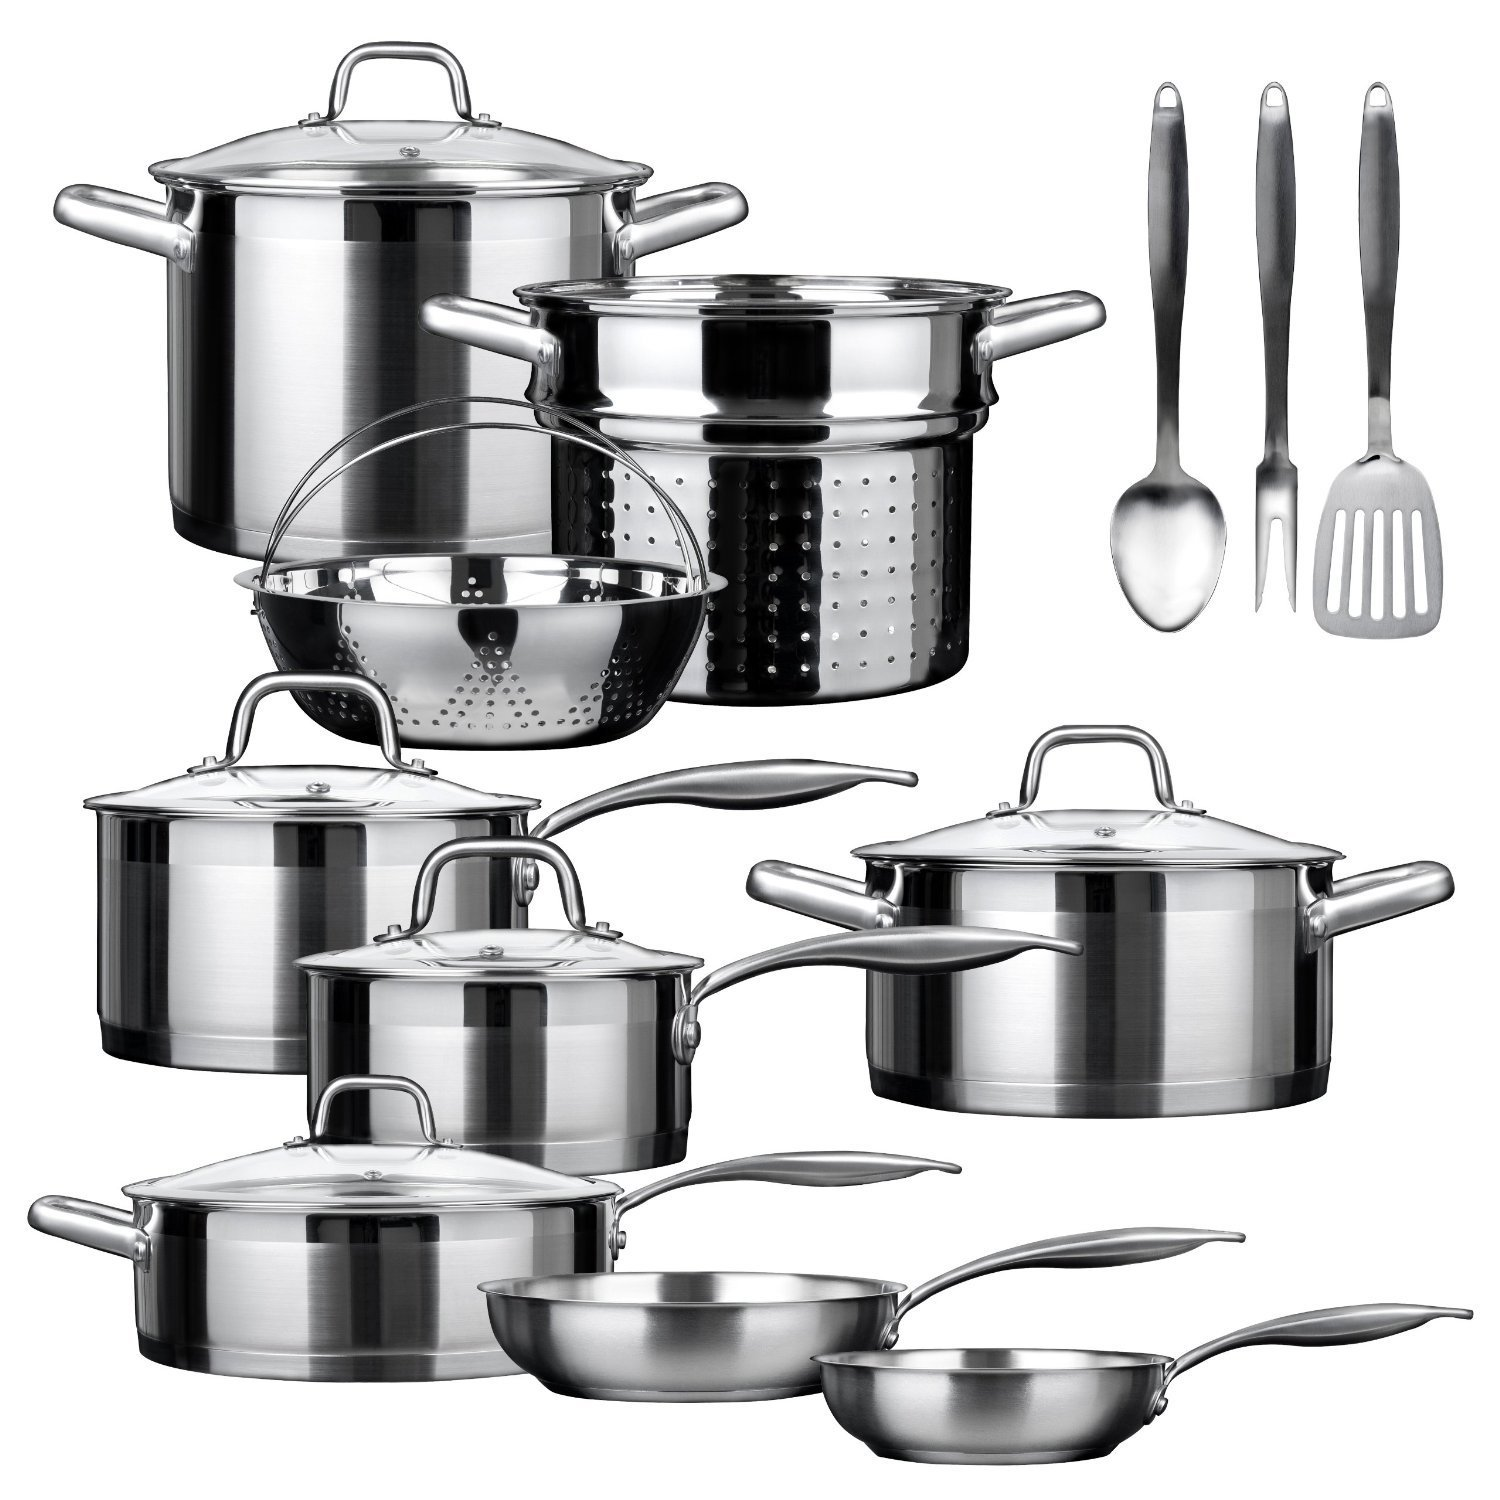 Best Cookware For Gl Top Stoves